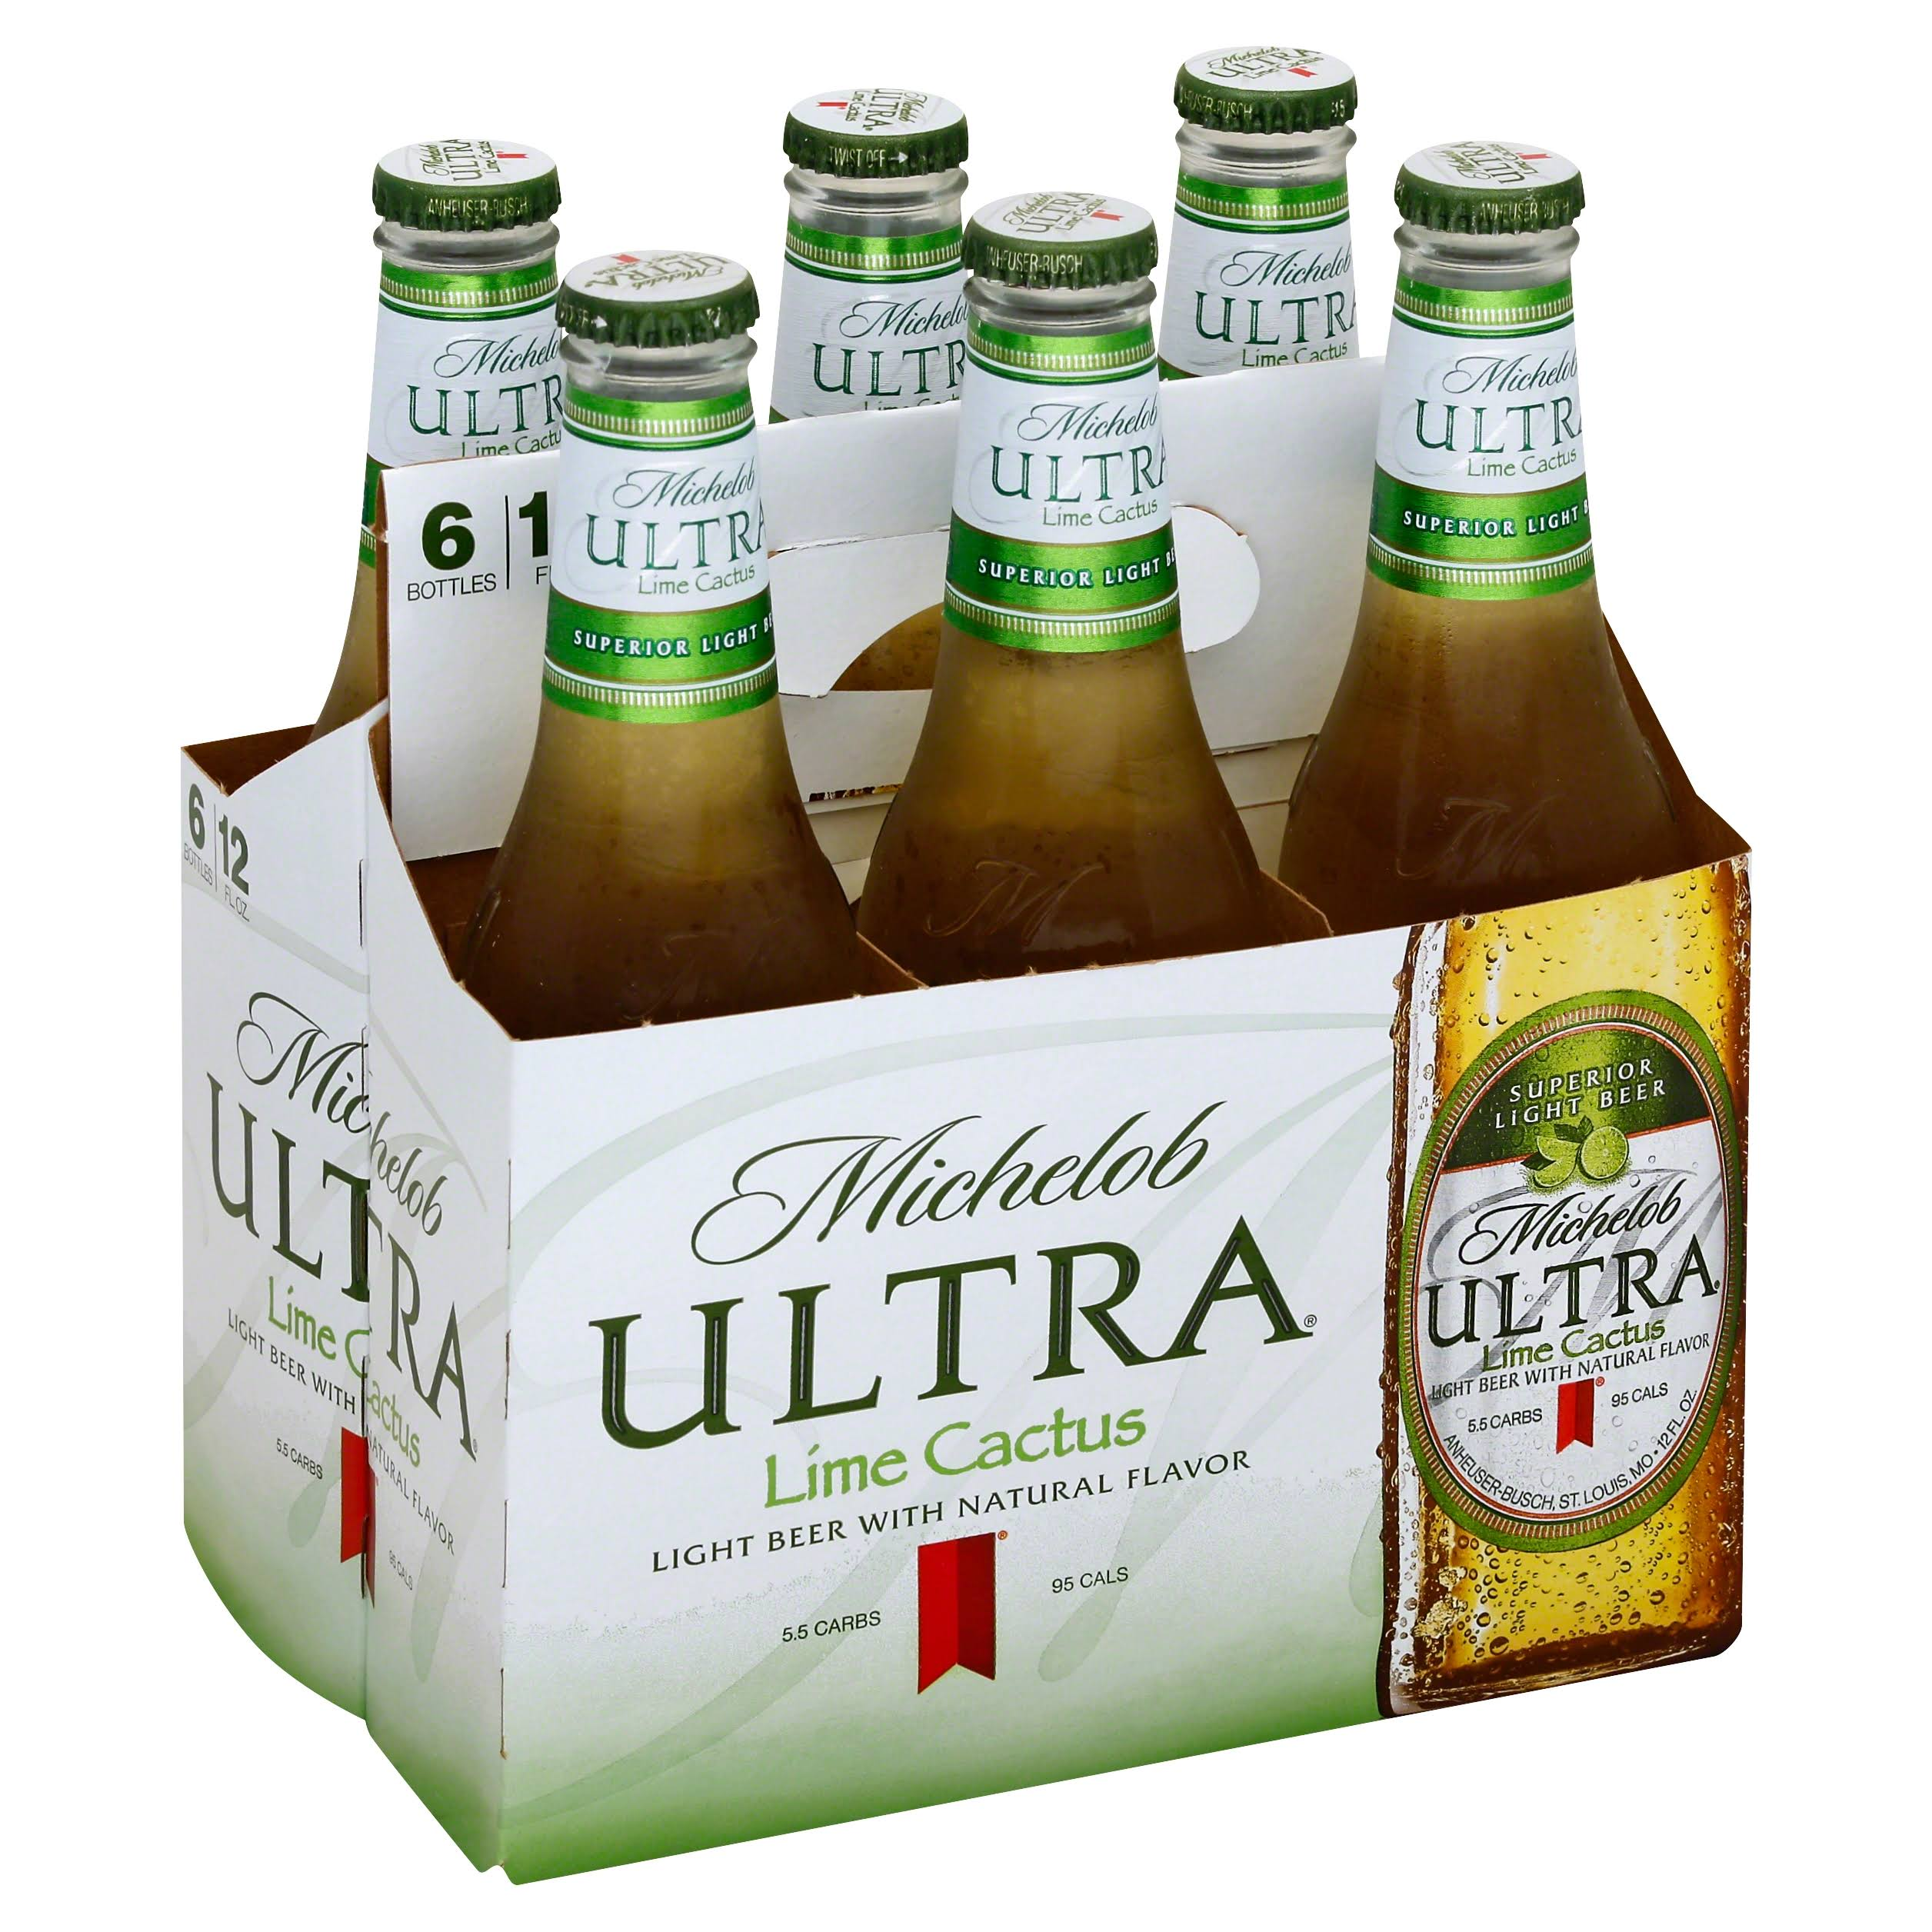 Michelob Ultra Beer, Light, Lime Cactus - 6 pack, 12 fl oz bottles